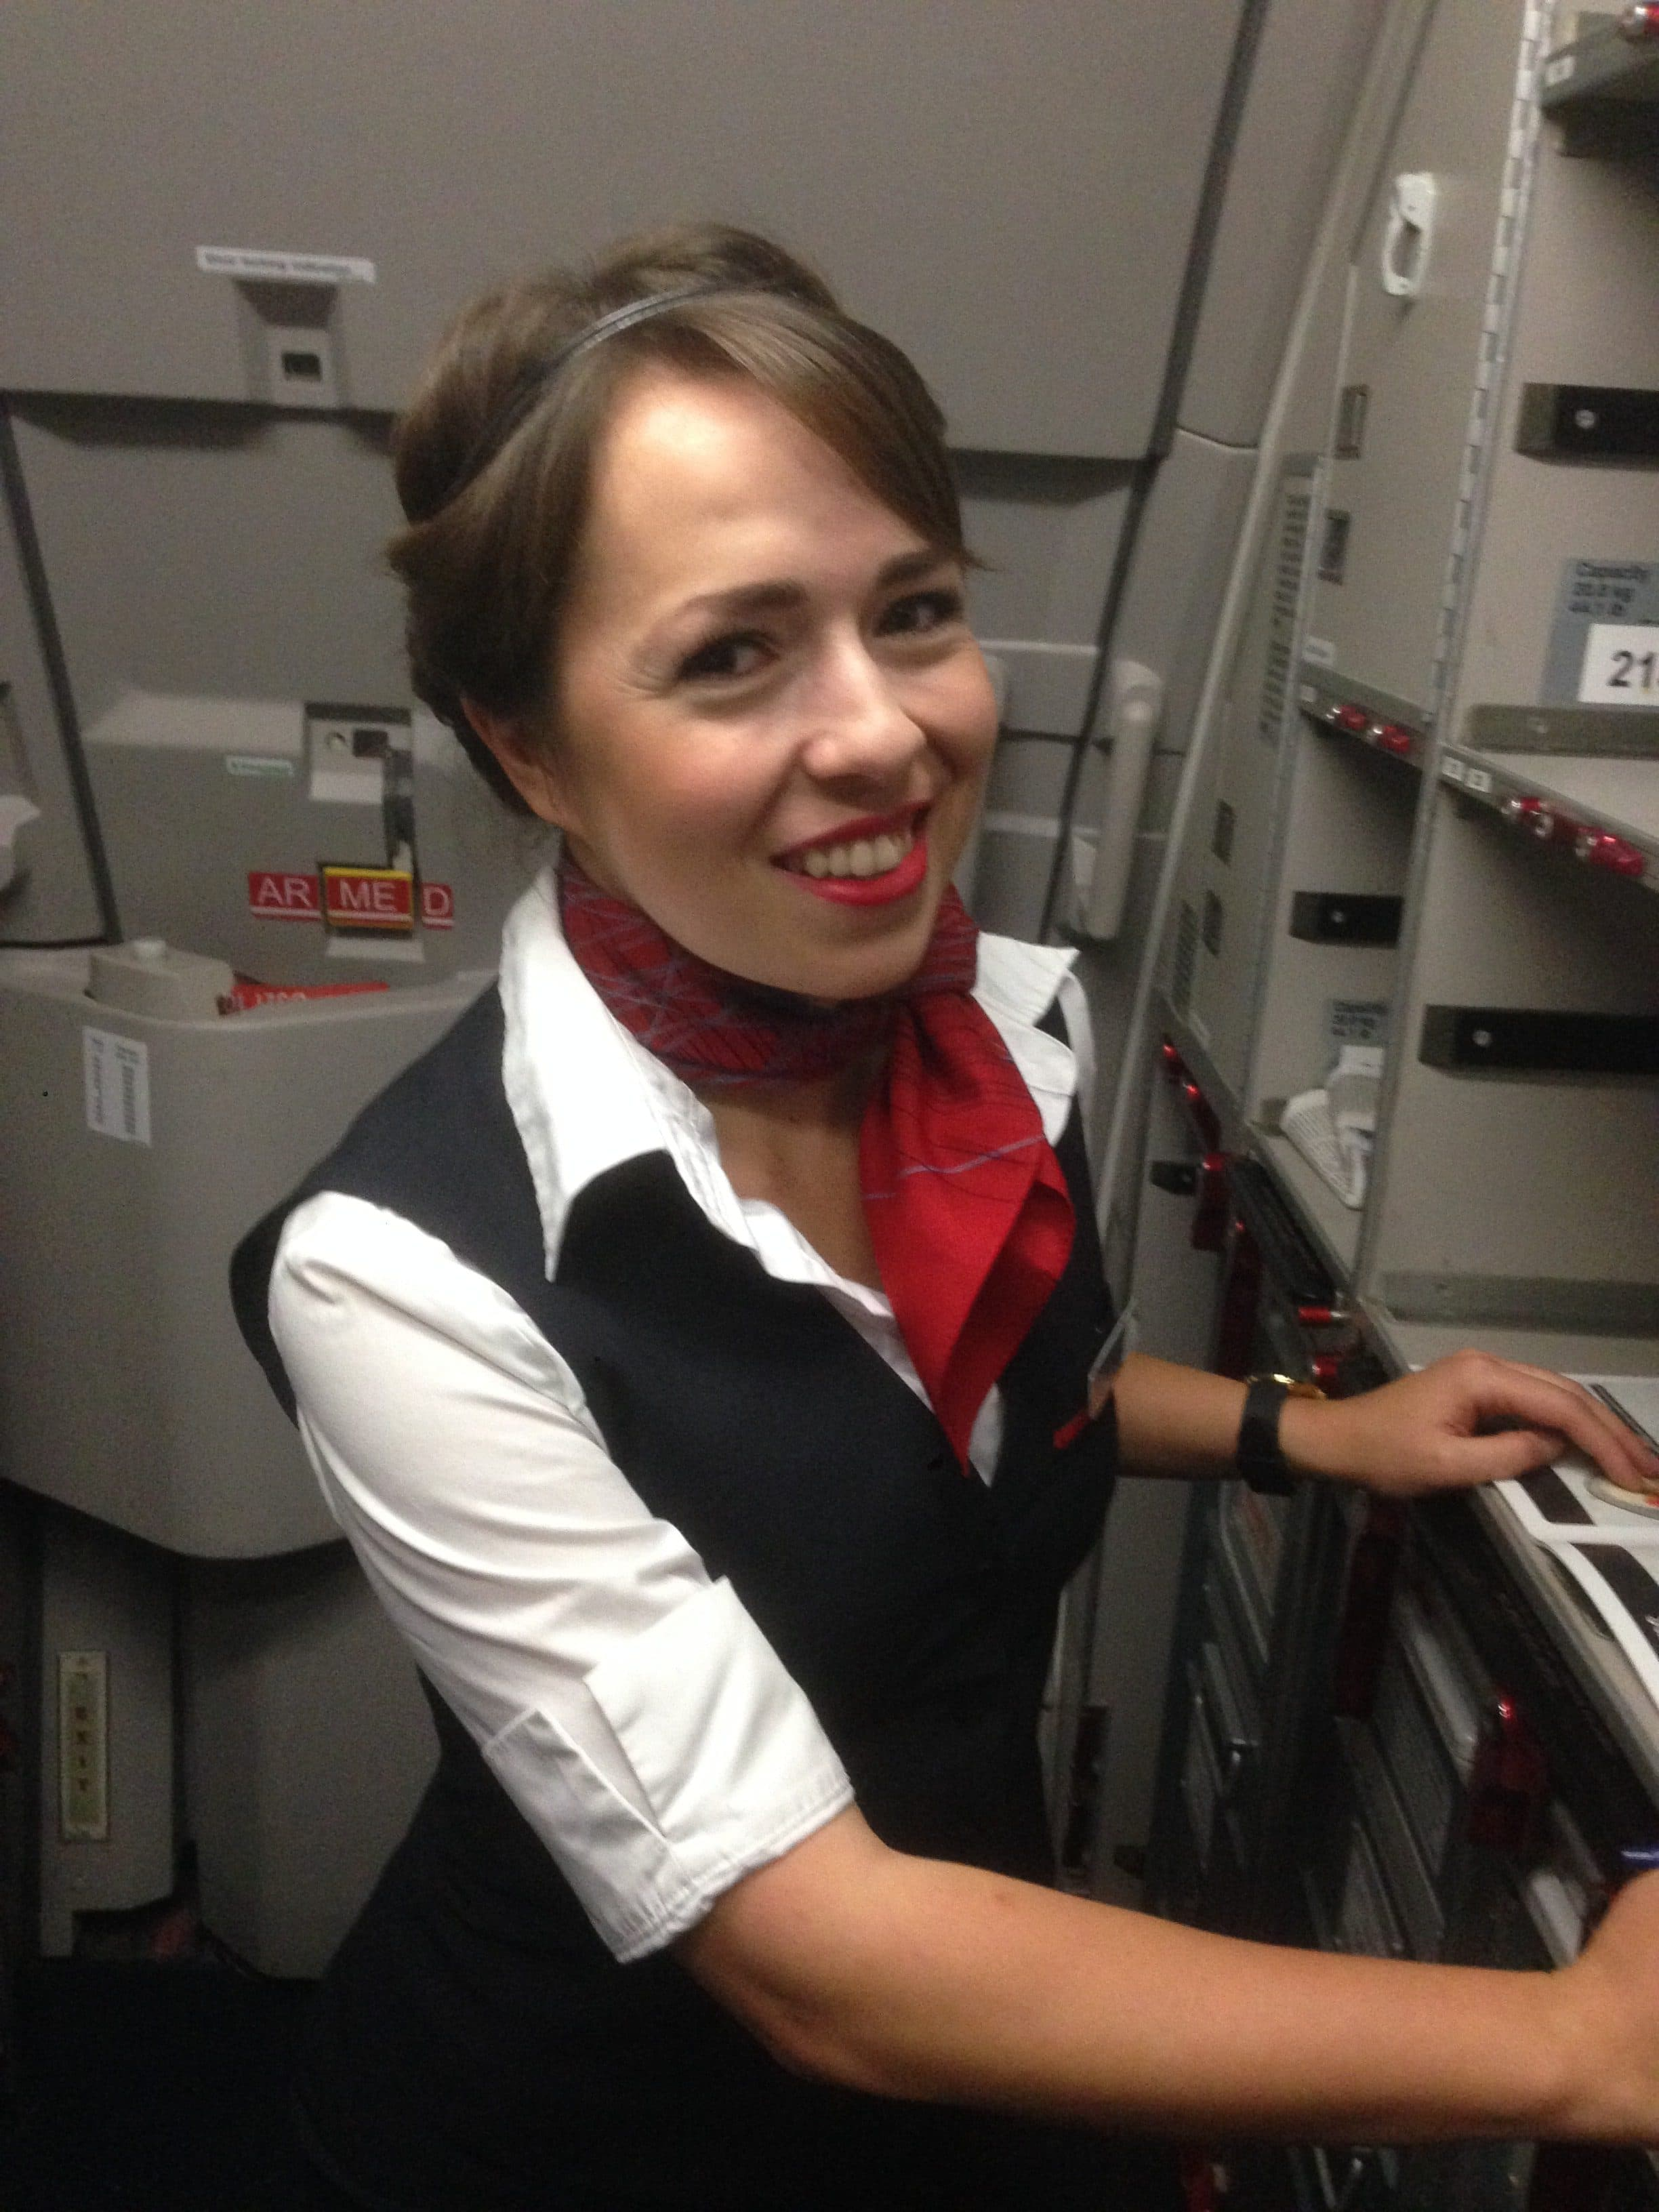 dream to be flight attendant Do you feel drawn to the life of a flight attendant flight attendants play an important role in air my dream job is to become a flight attendant.